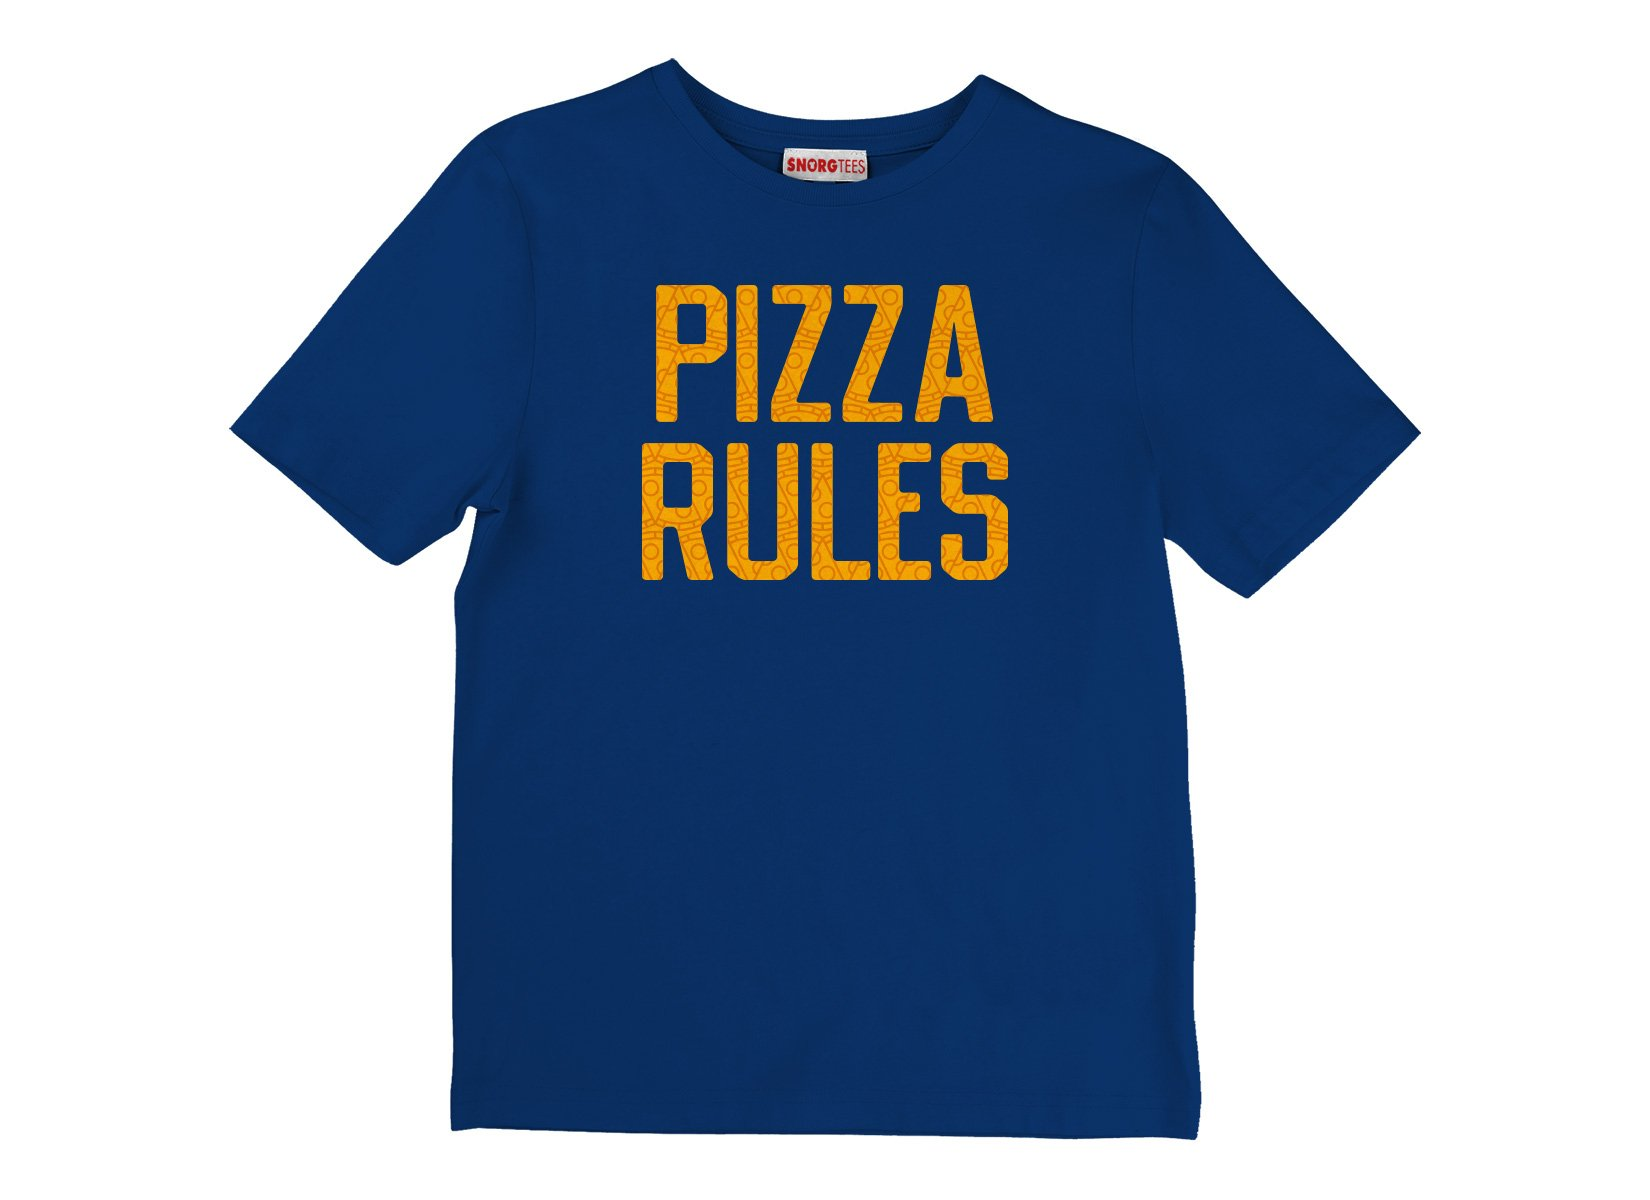 Pizza Rules on Kids T-Shirt